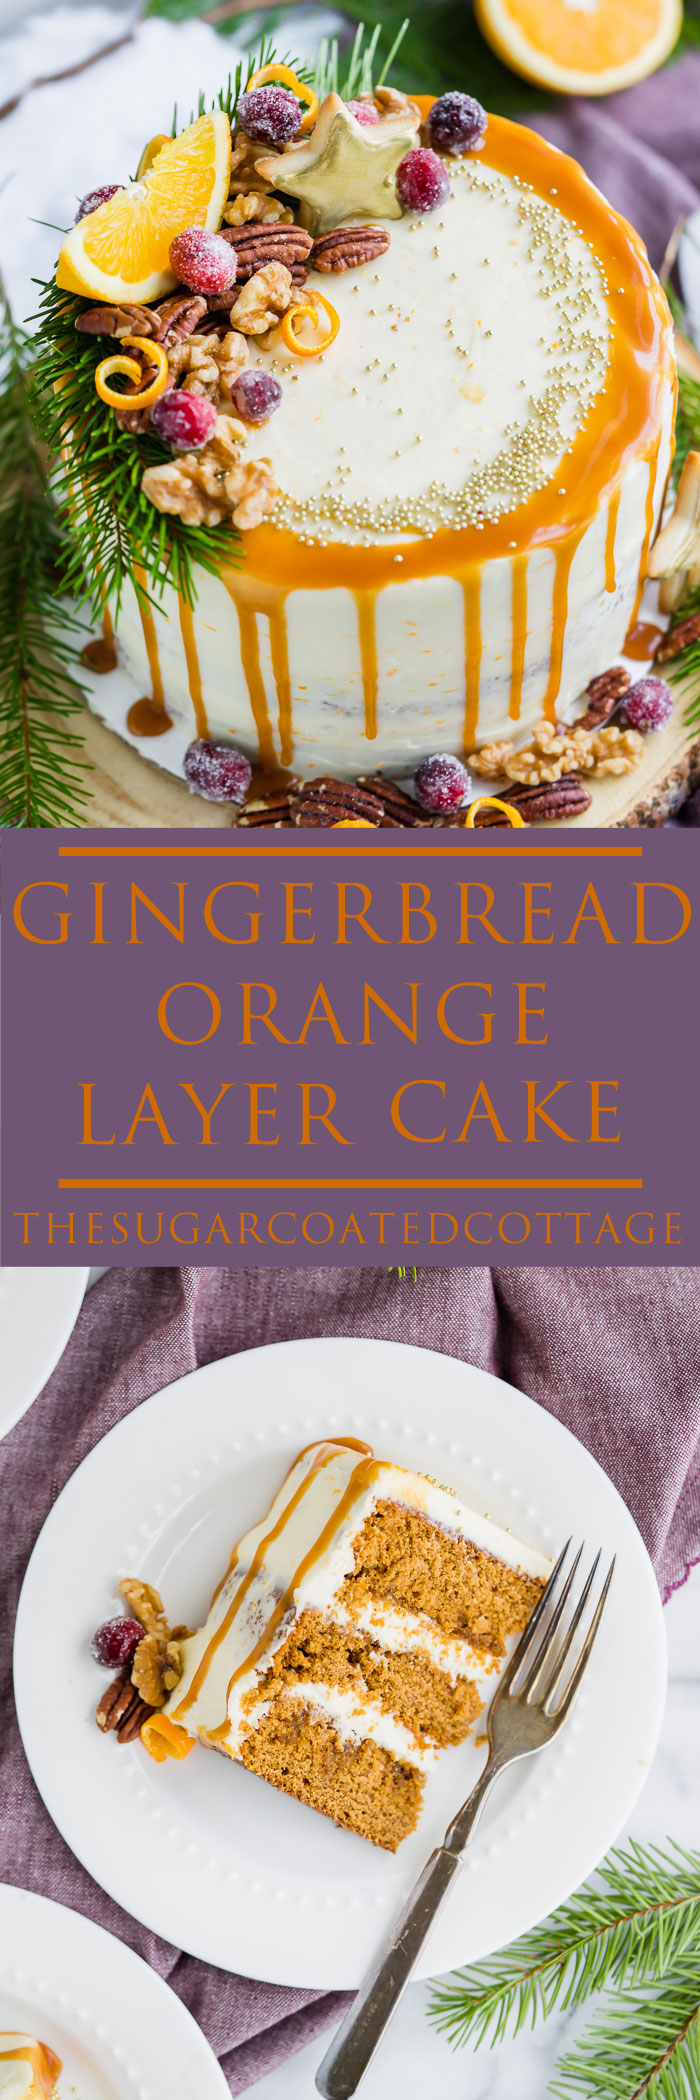 Gingerbread Layer Cake With Buttercream